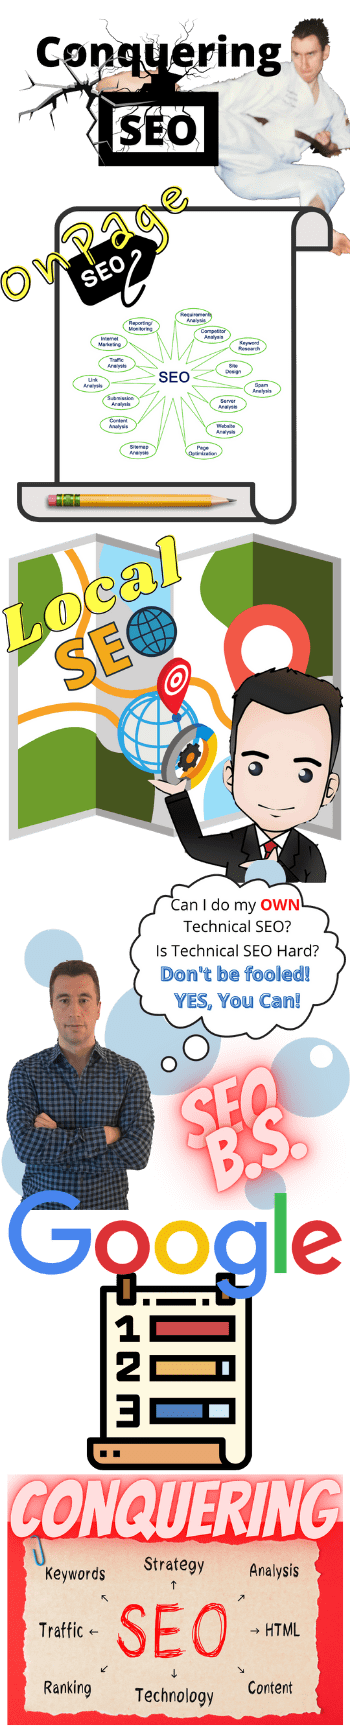 picture of collage of seo services